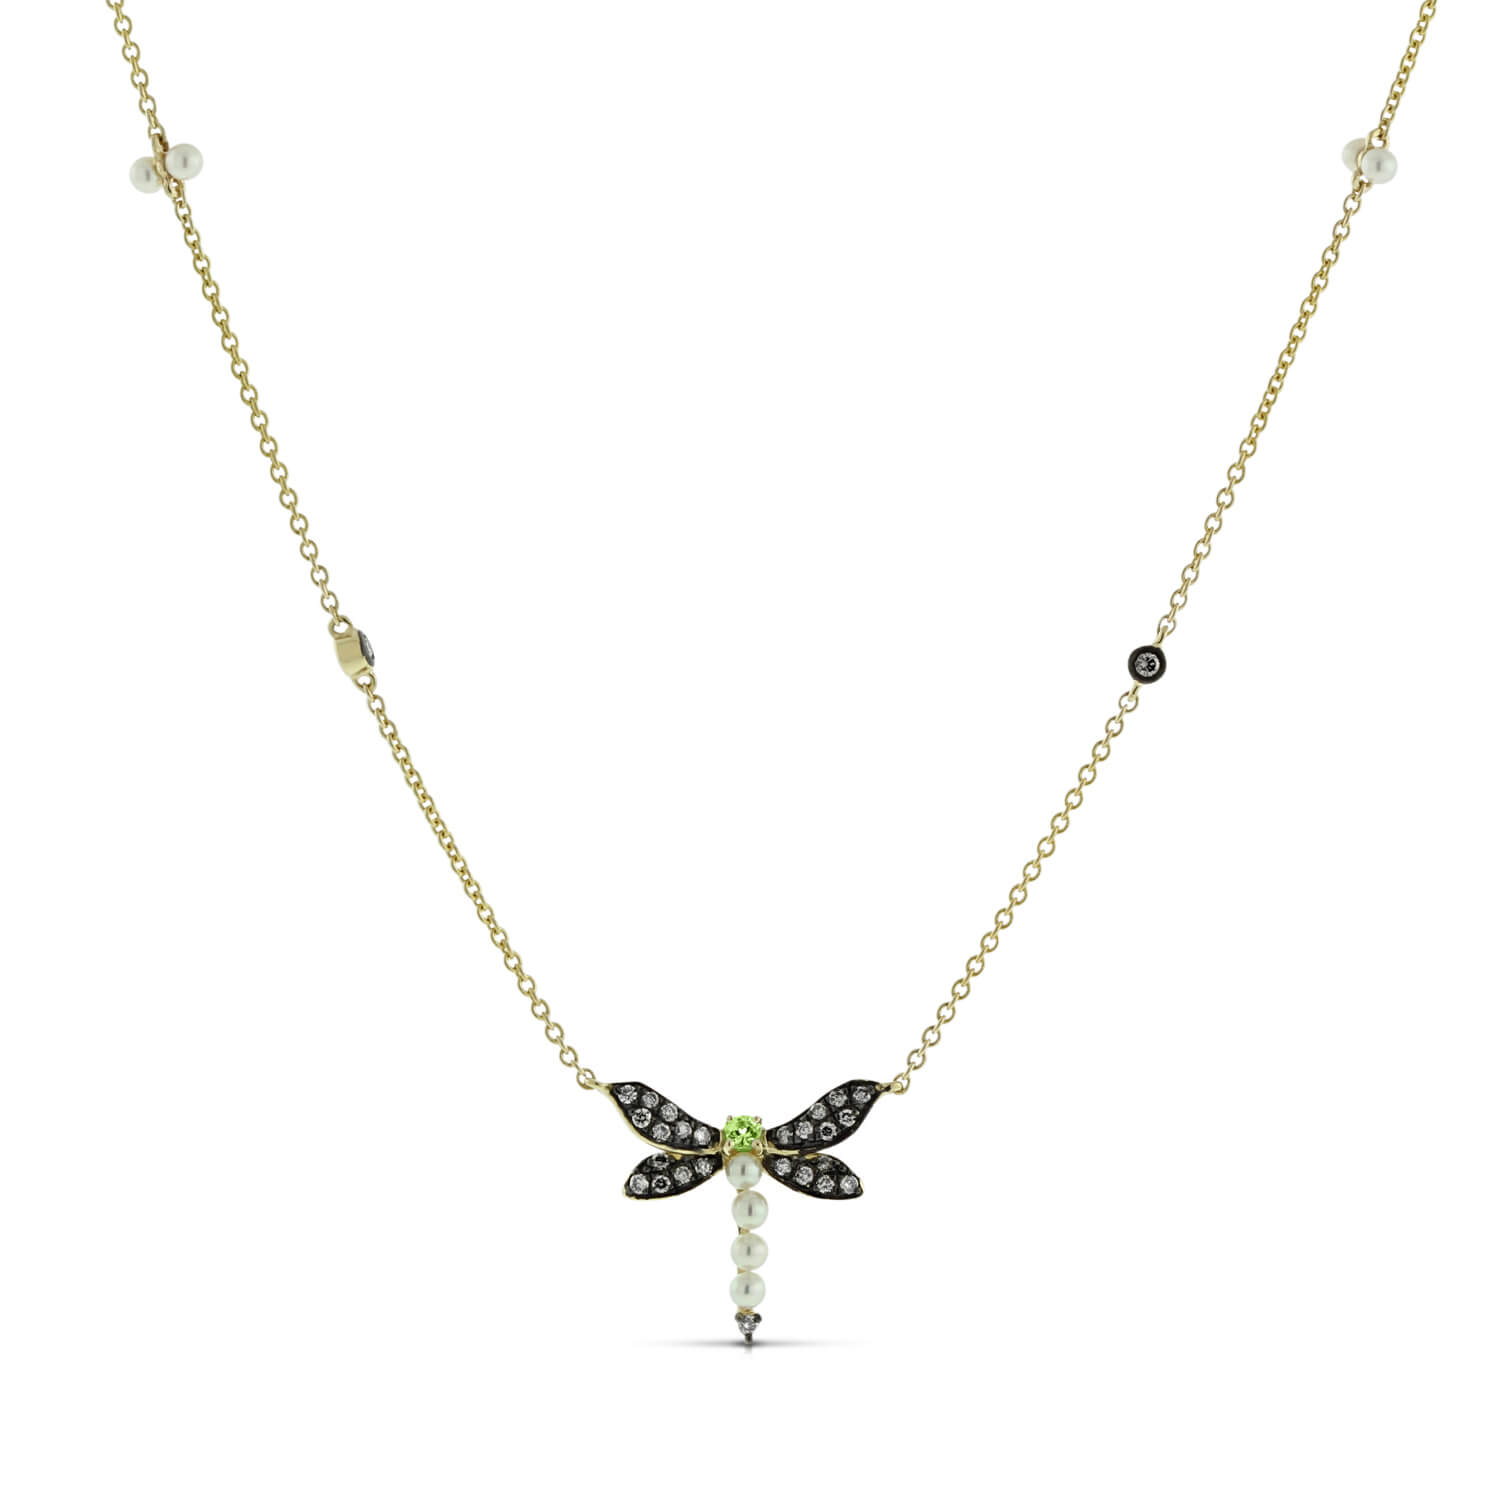 af bling jewelry inch dragonfly winged sterling open necklace silver